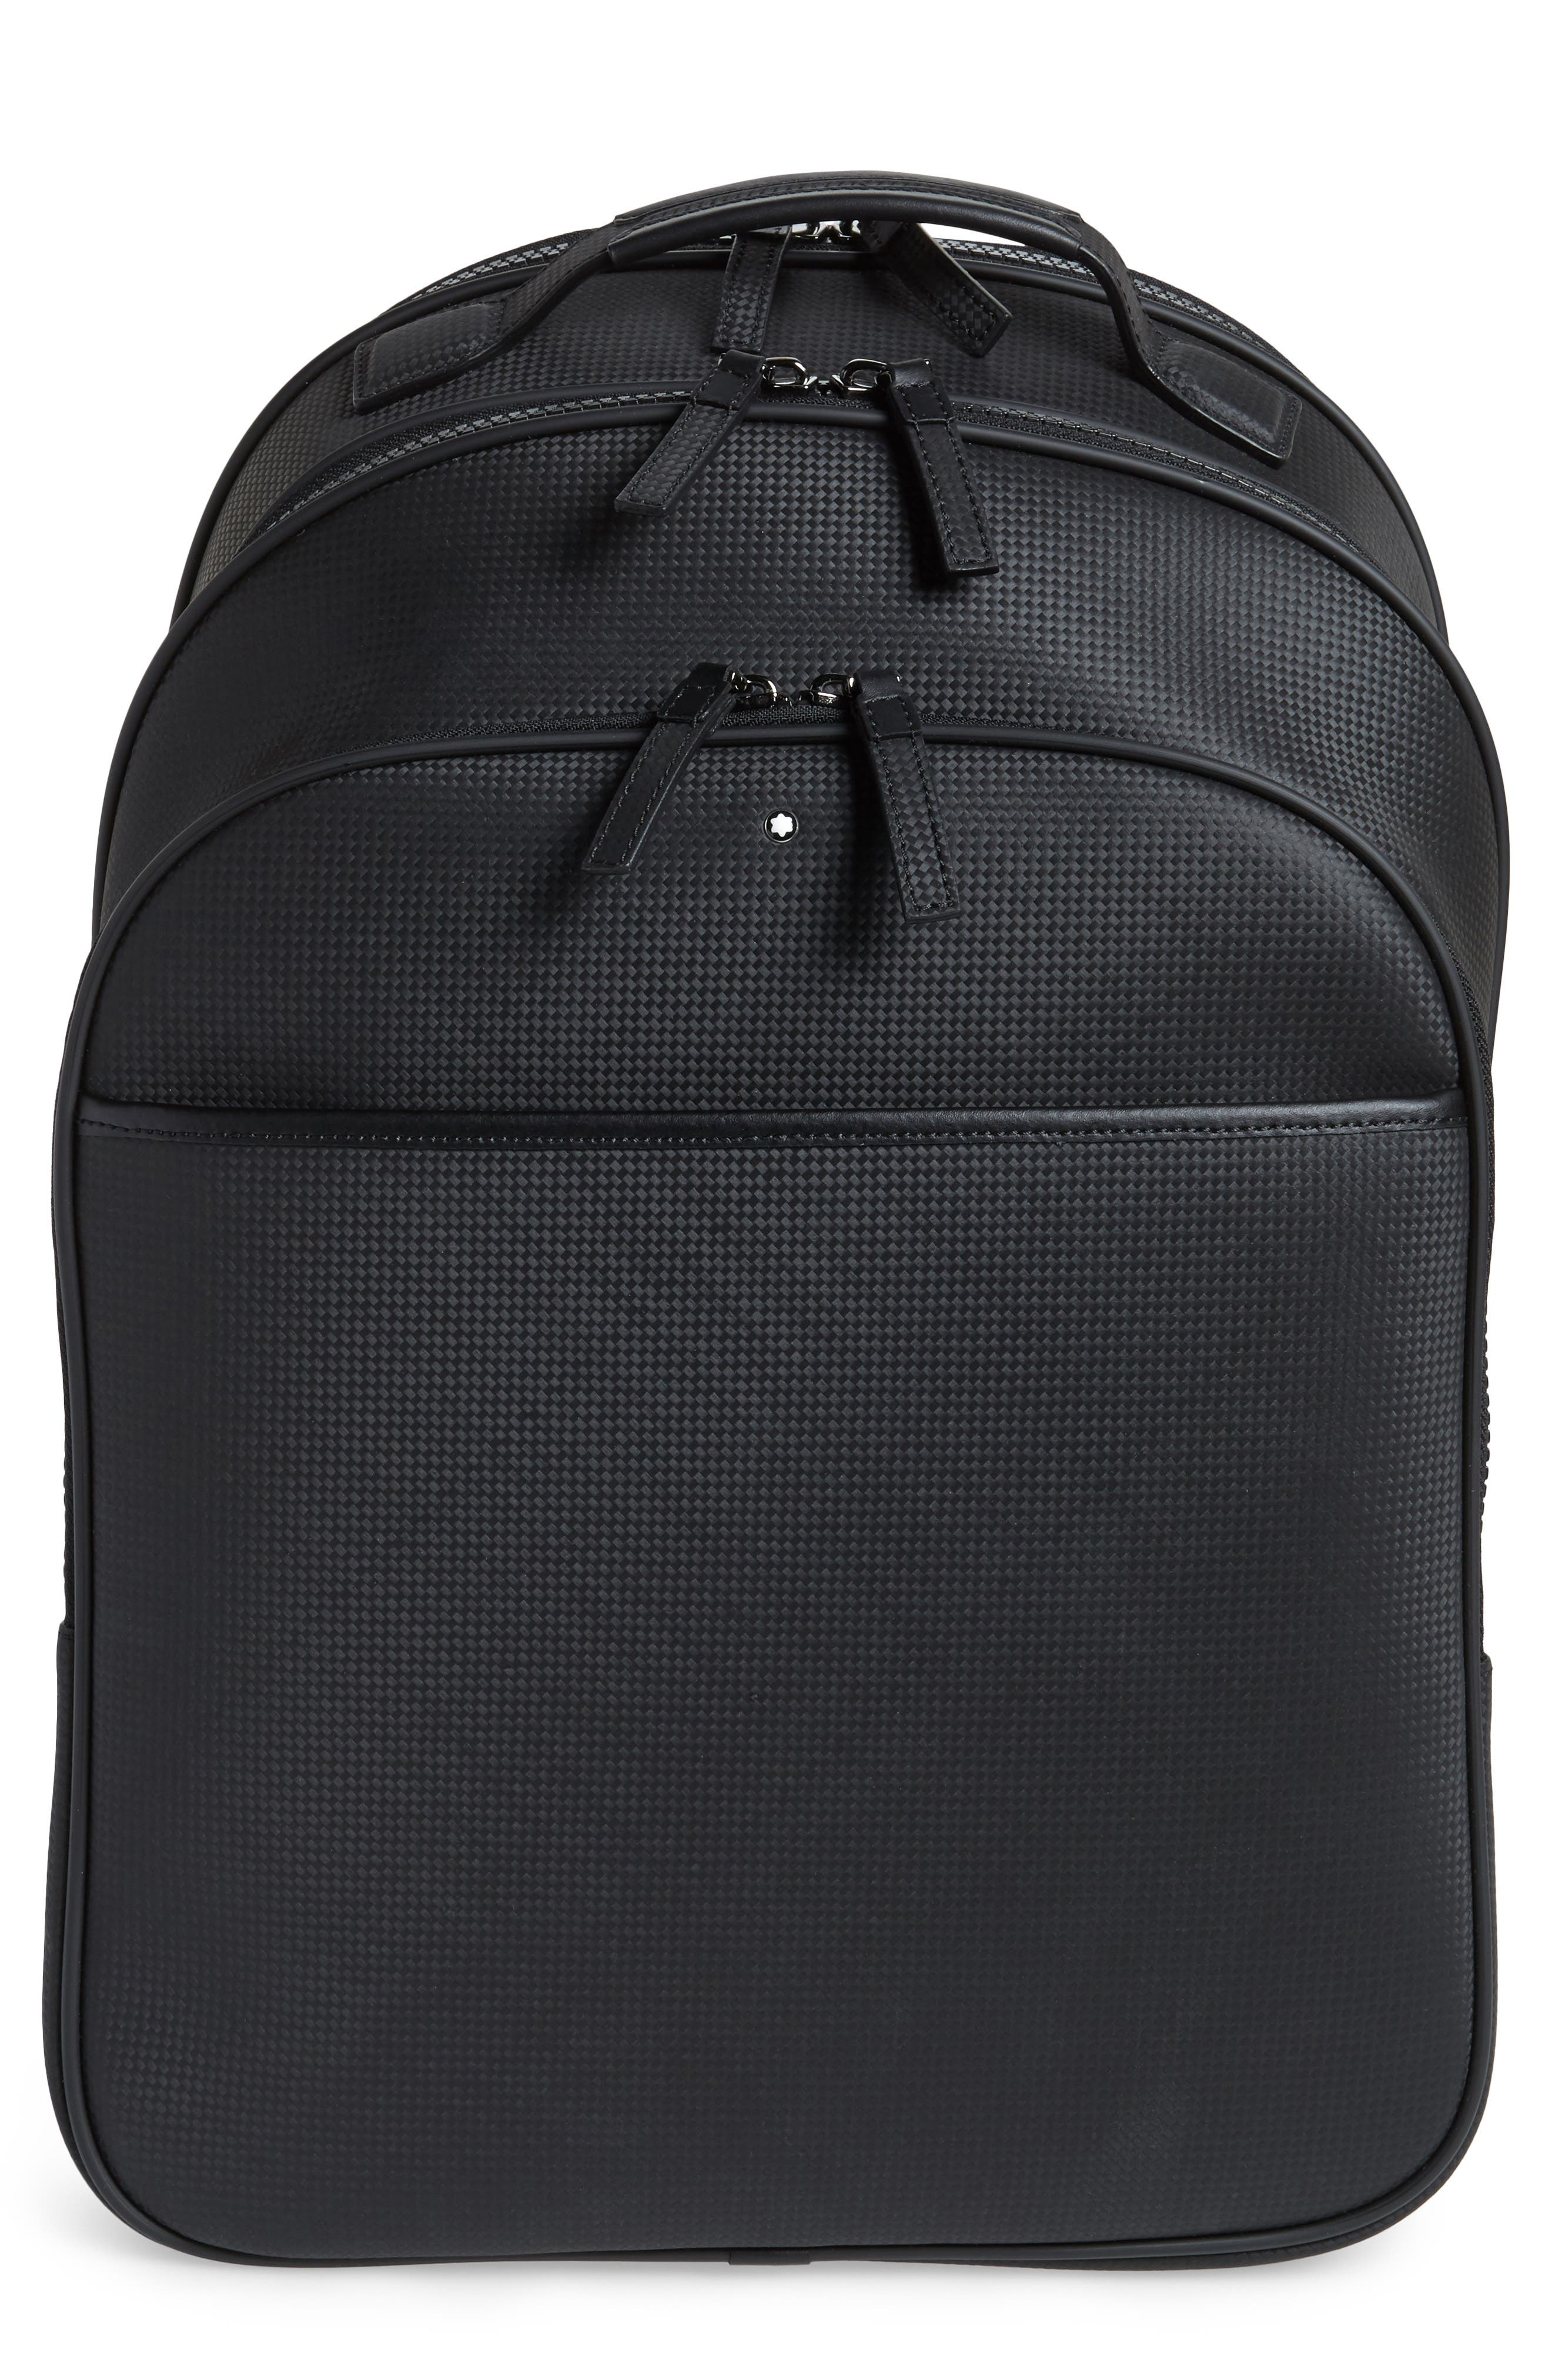 Extreme Leather Backpack,                             Main thumbnail 1, color,                             BLACK